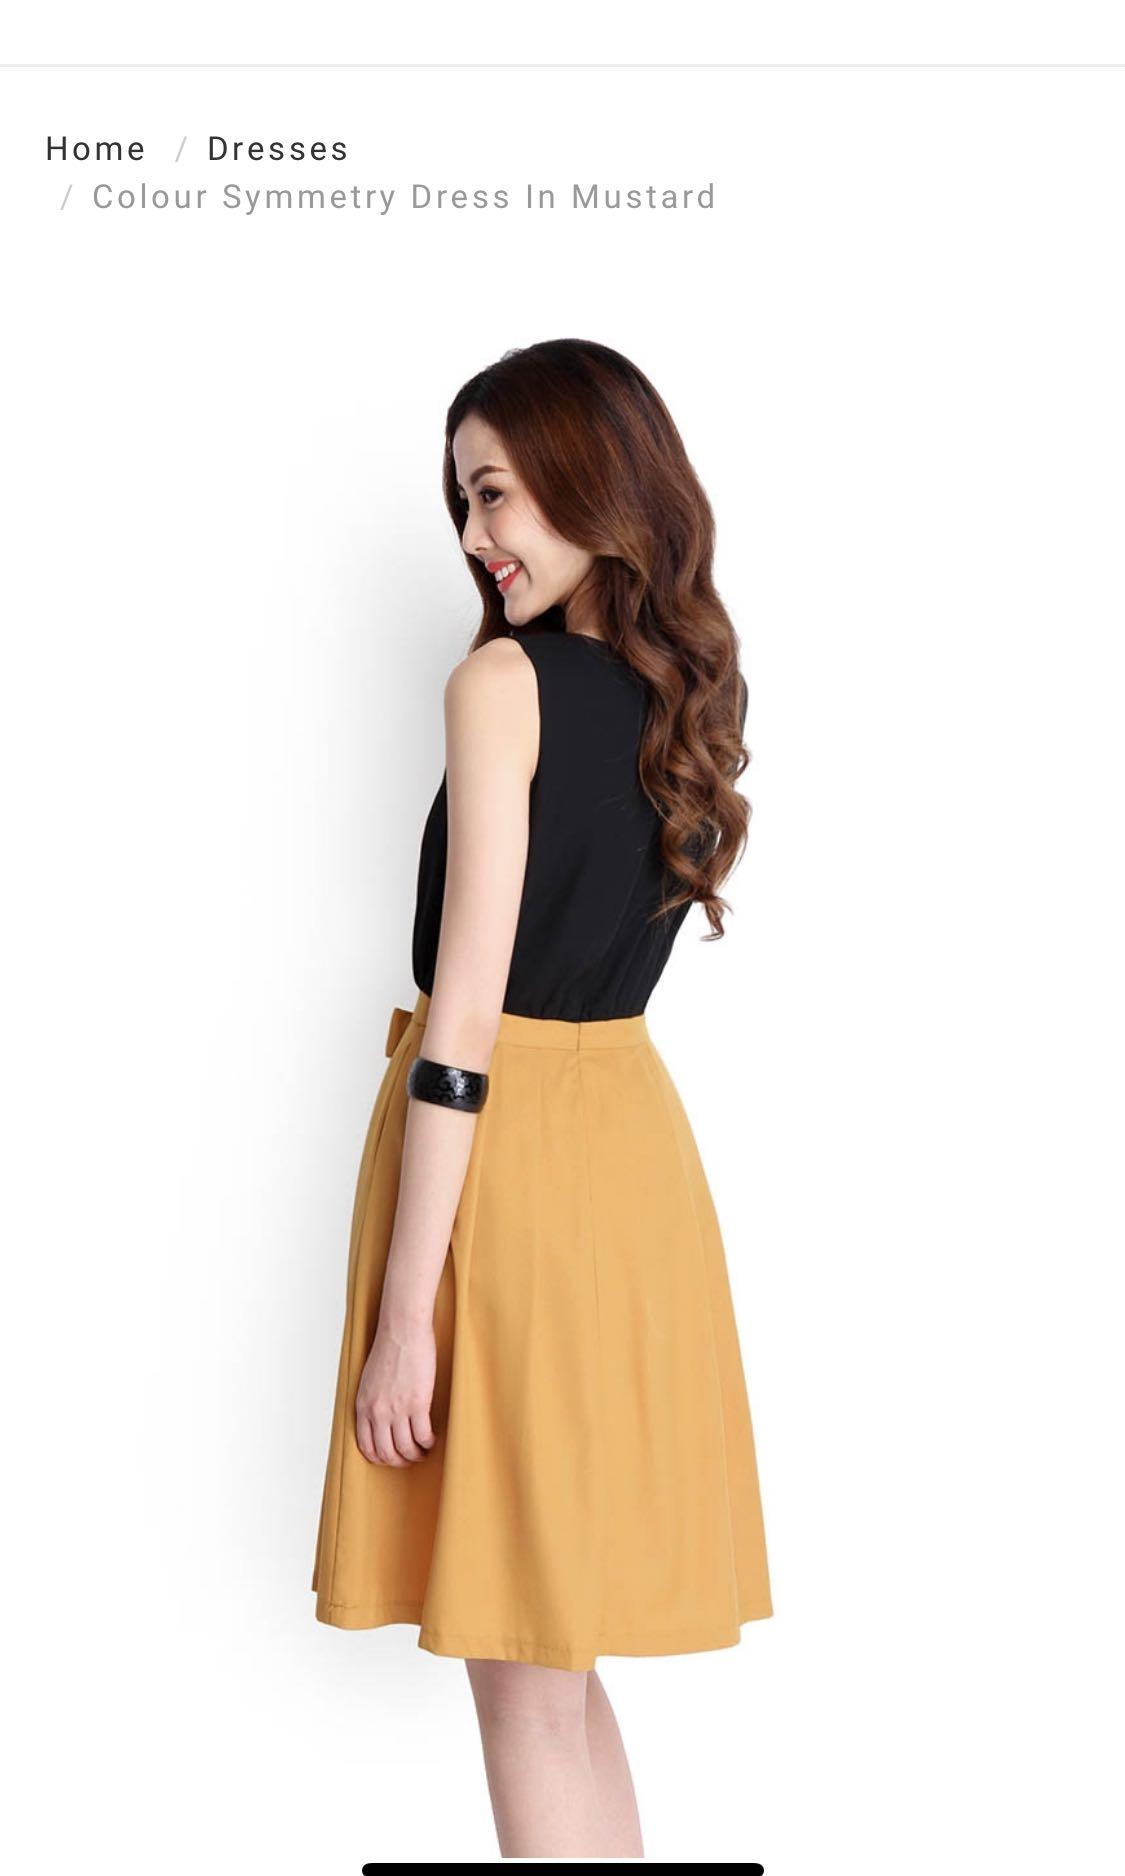 LilyPirates Colour Symmetry Dress in Mustard